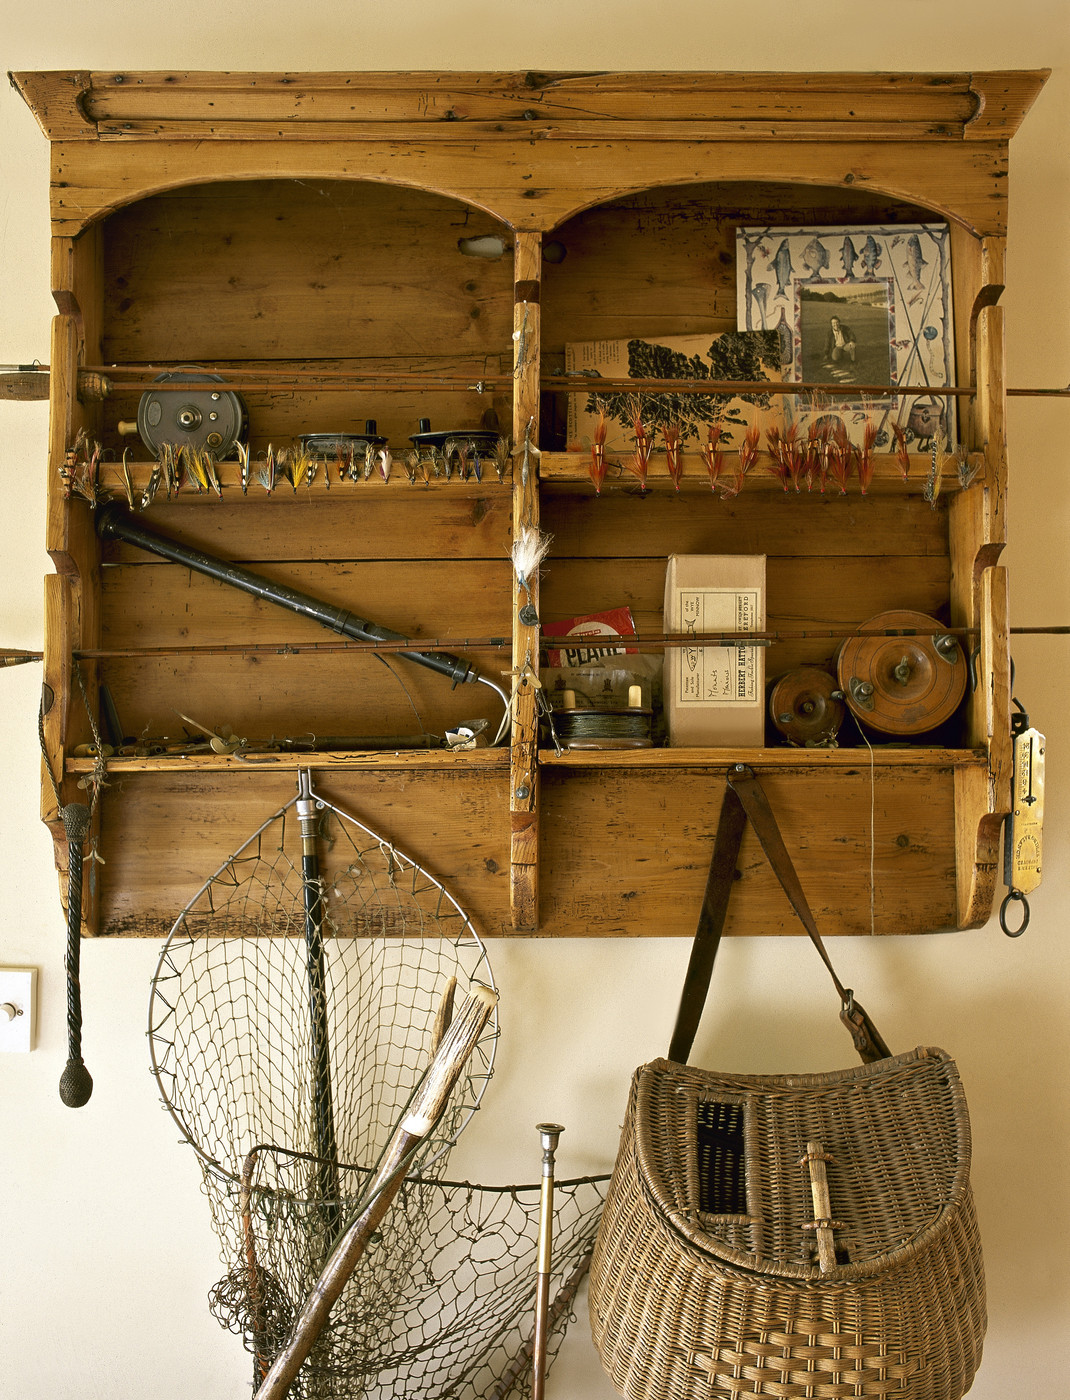 Fishing tackle photos design ideas remodel and decor for Fly fishing decor